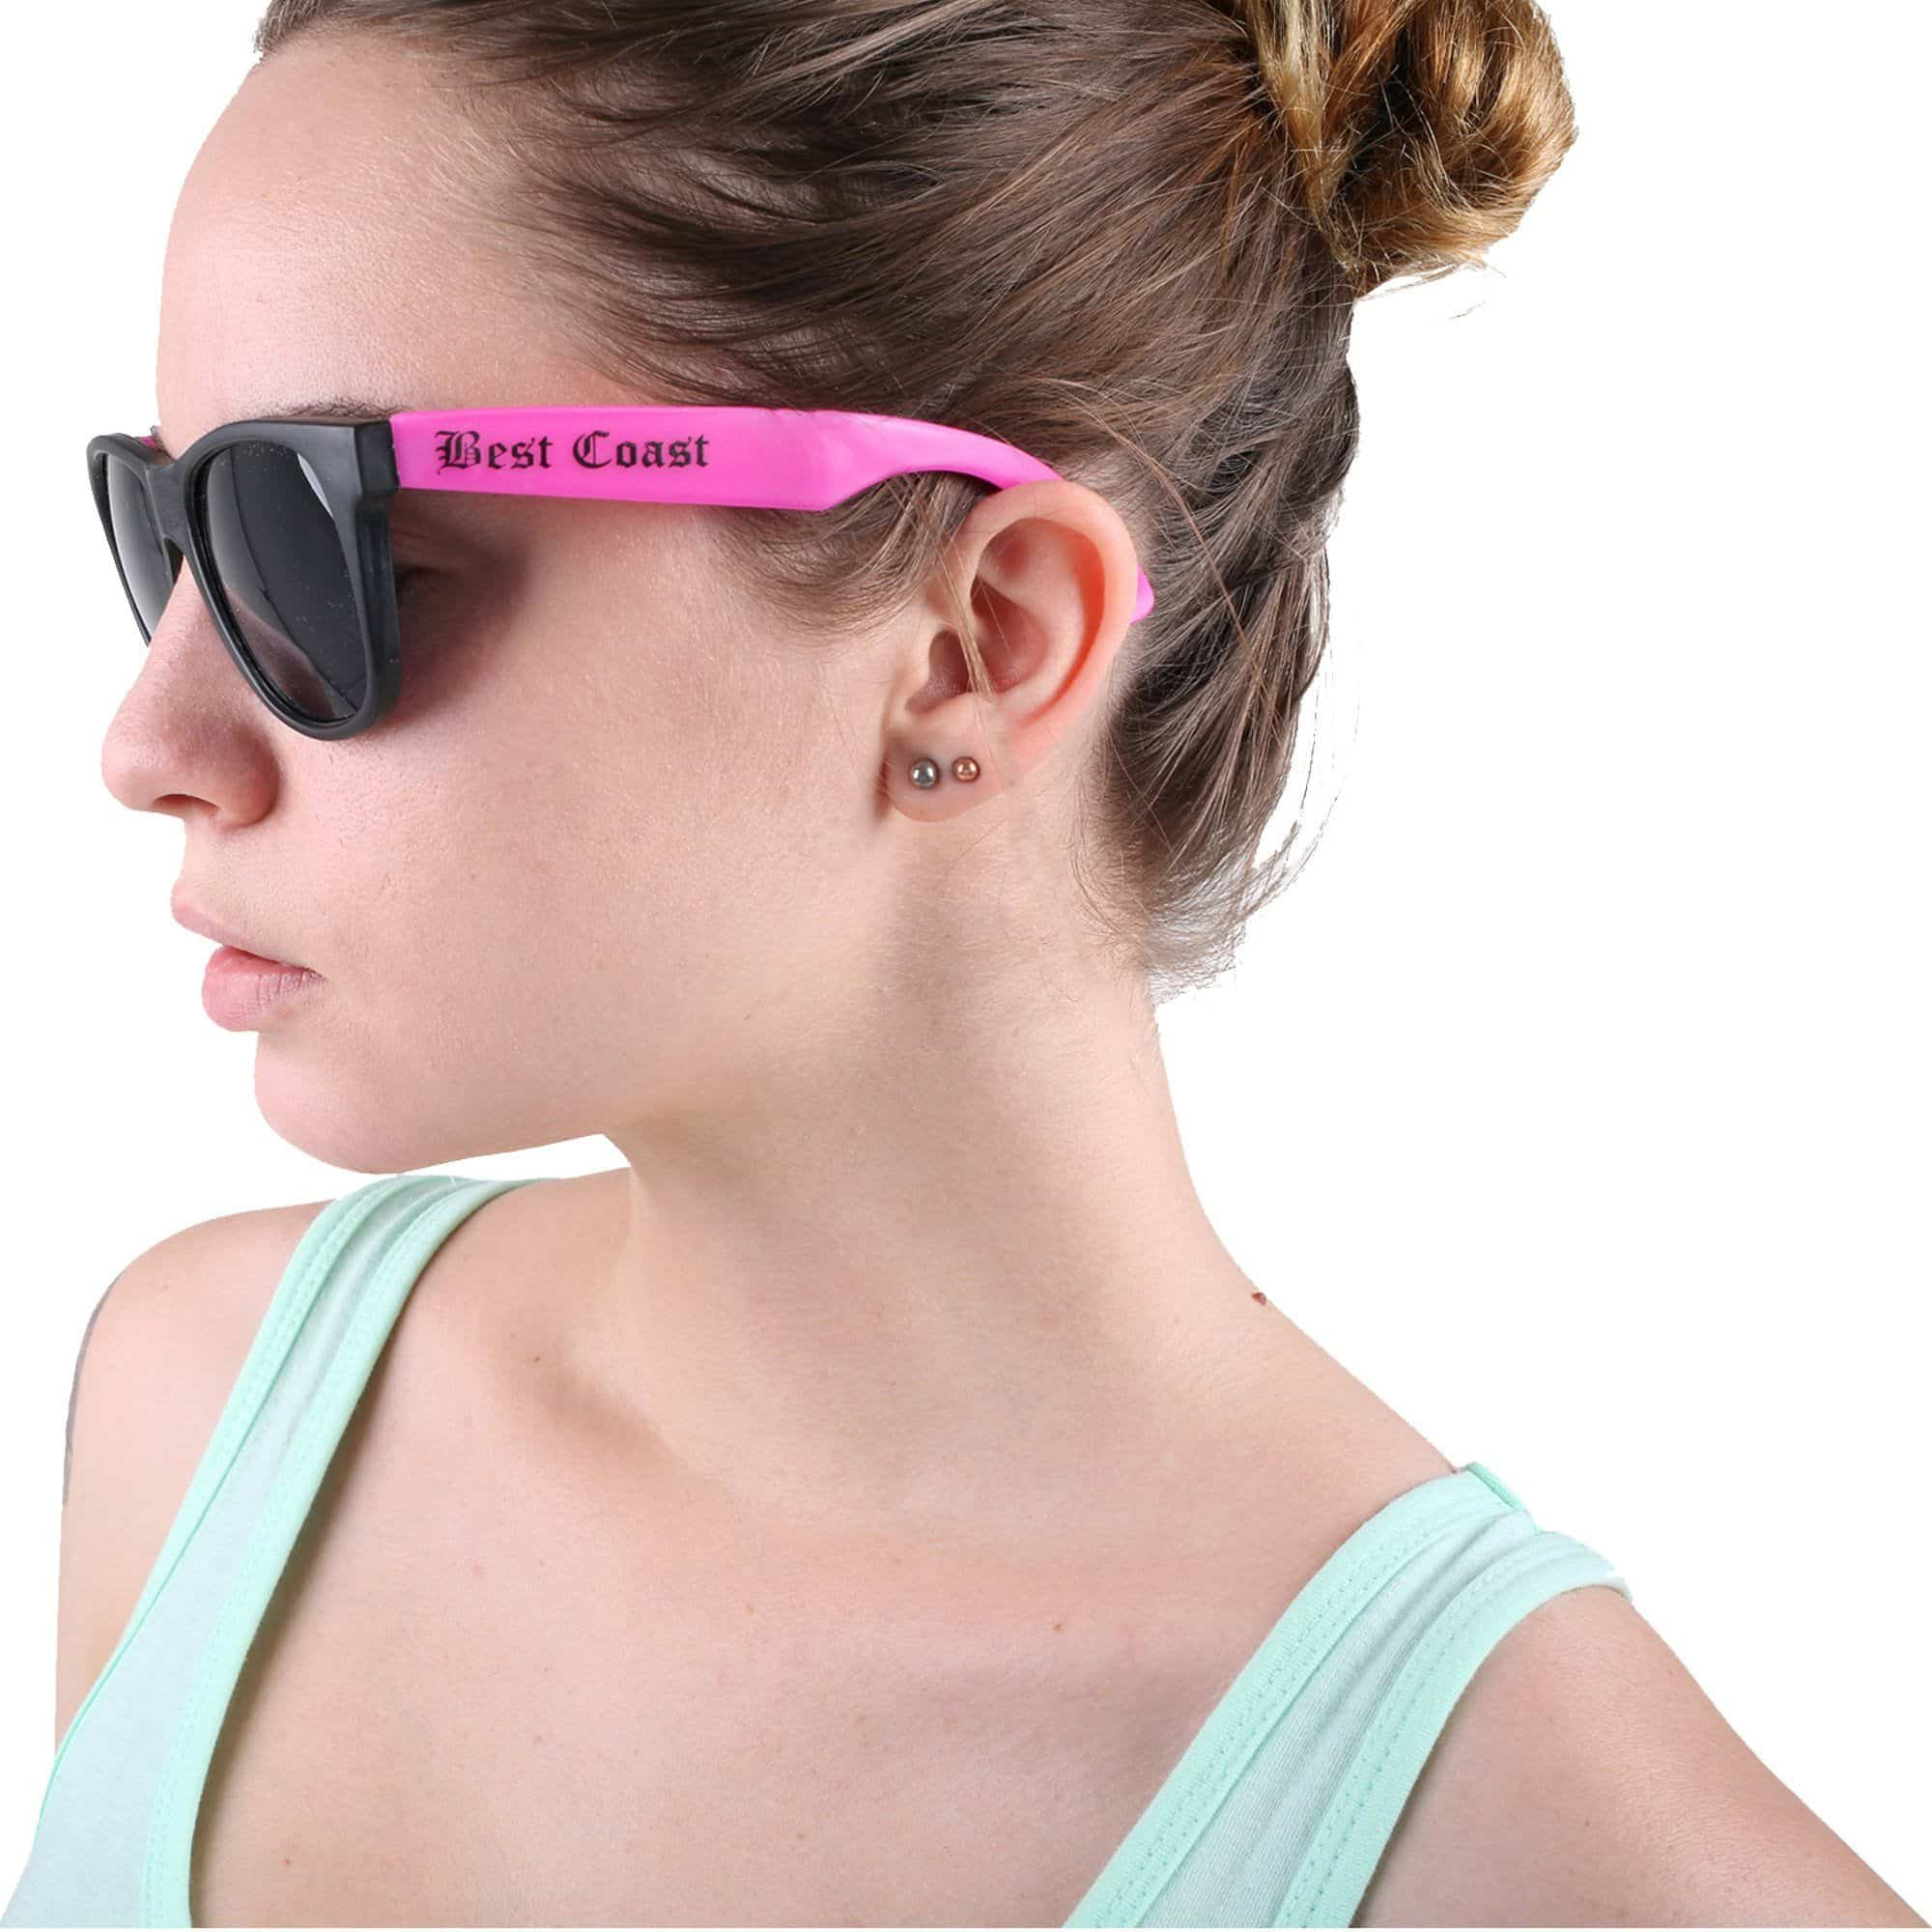 'Best Coast' Sunglasses